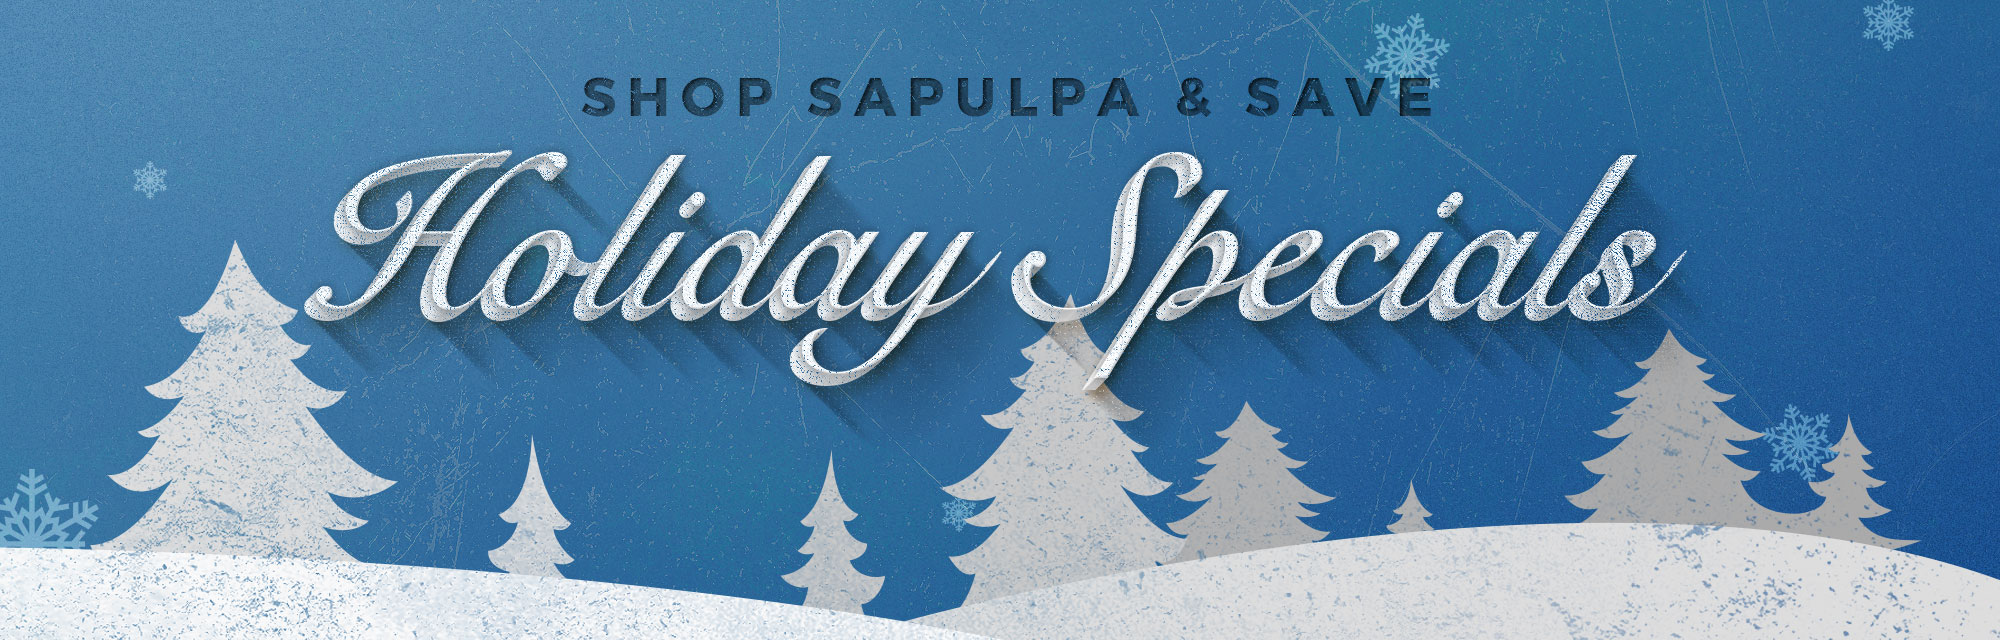 Shop Sapulpa Holiday Specials Banner